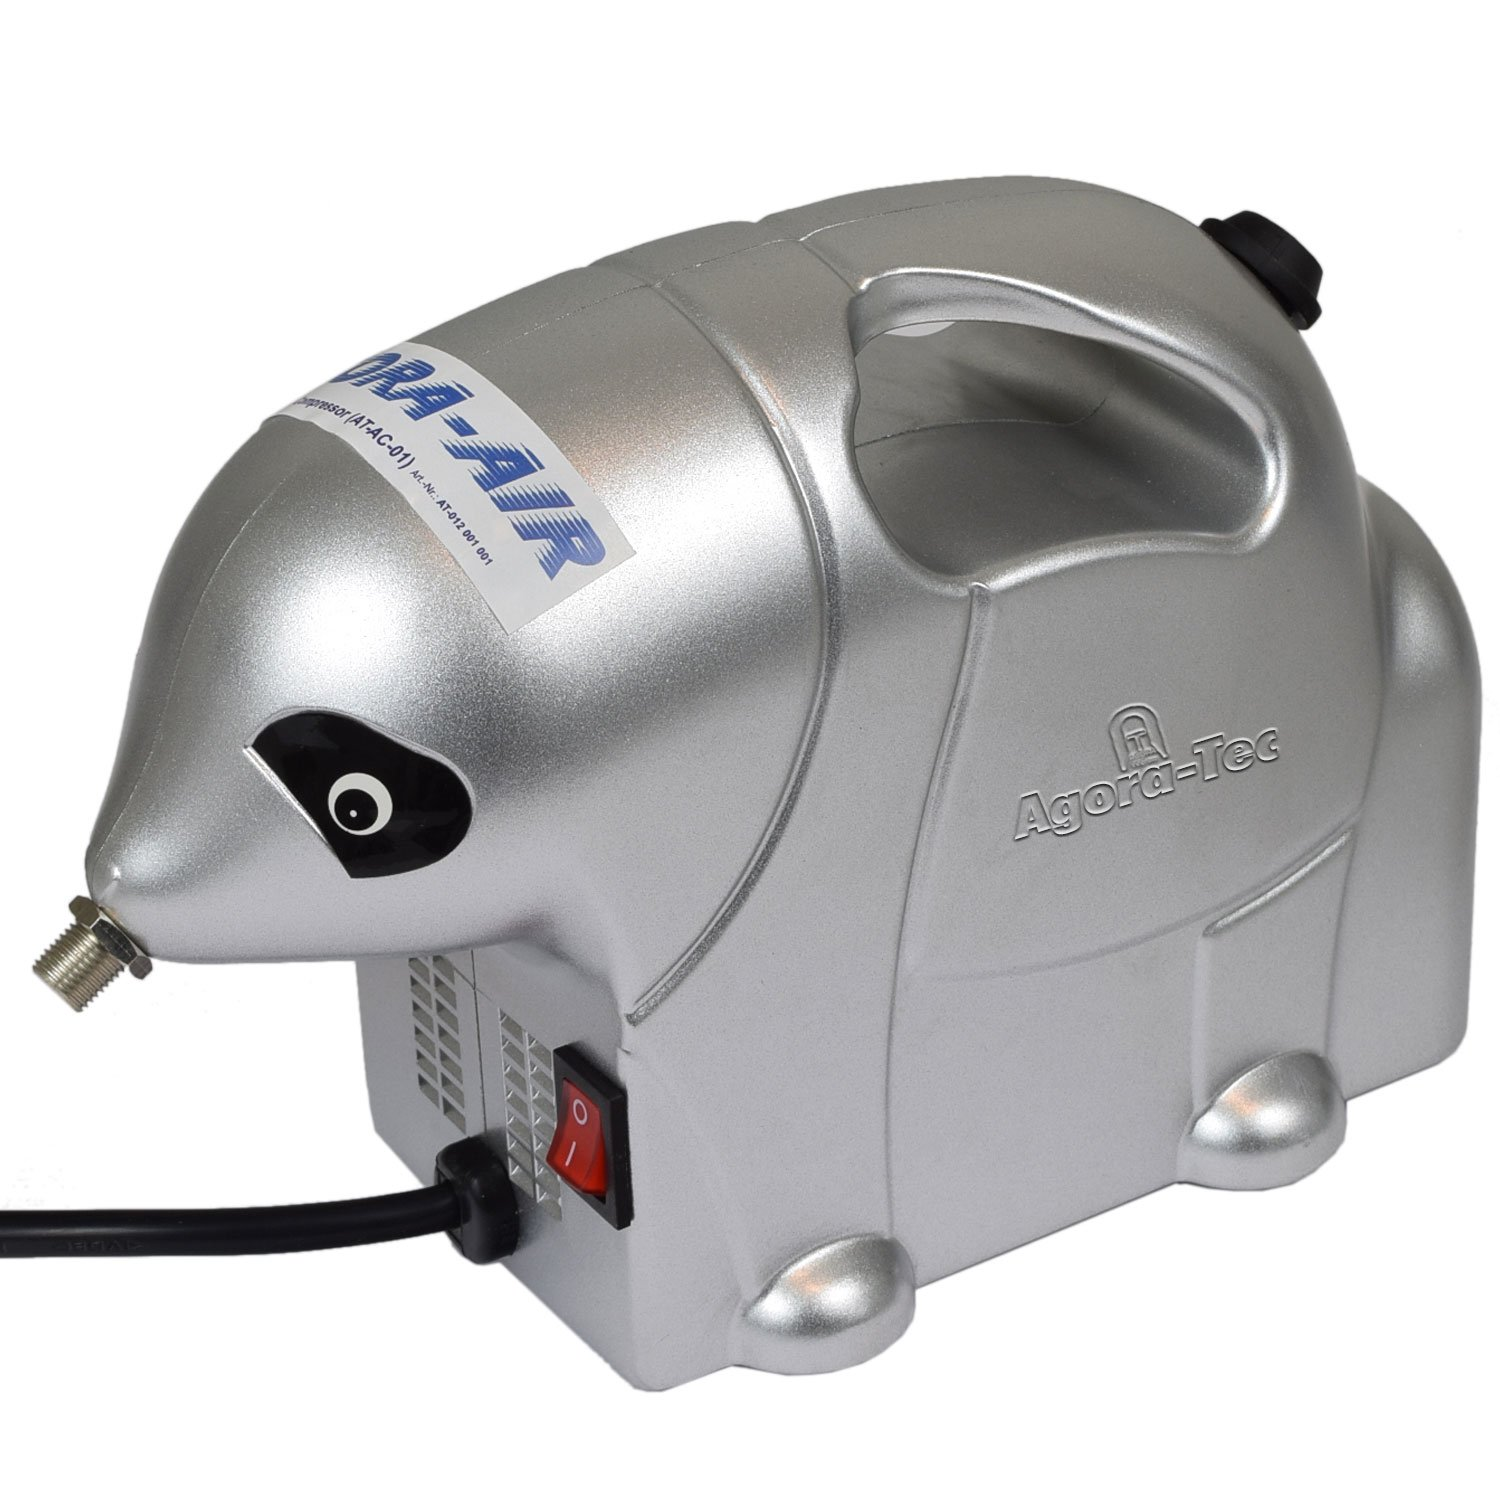 Agora-Tec ® de AC at-Airbrush Compressor at 01, compresseur pour aérographe applications de style éléphant avec 2,8 bar et 13L/min, avec pistolenhalterung compresseur pour aérographe applications de style éléphant avec 2